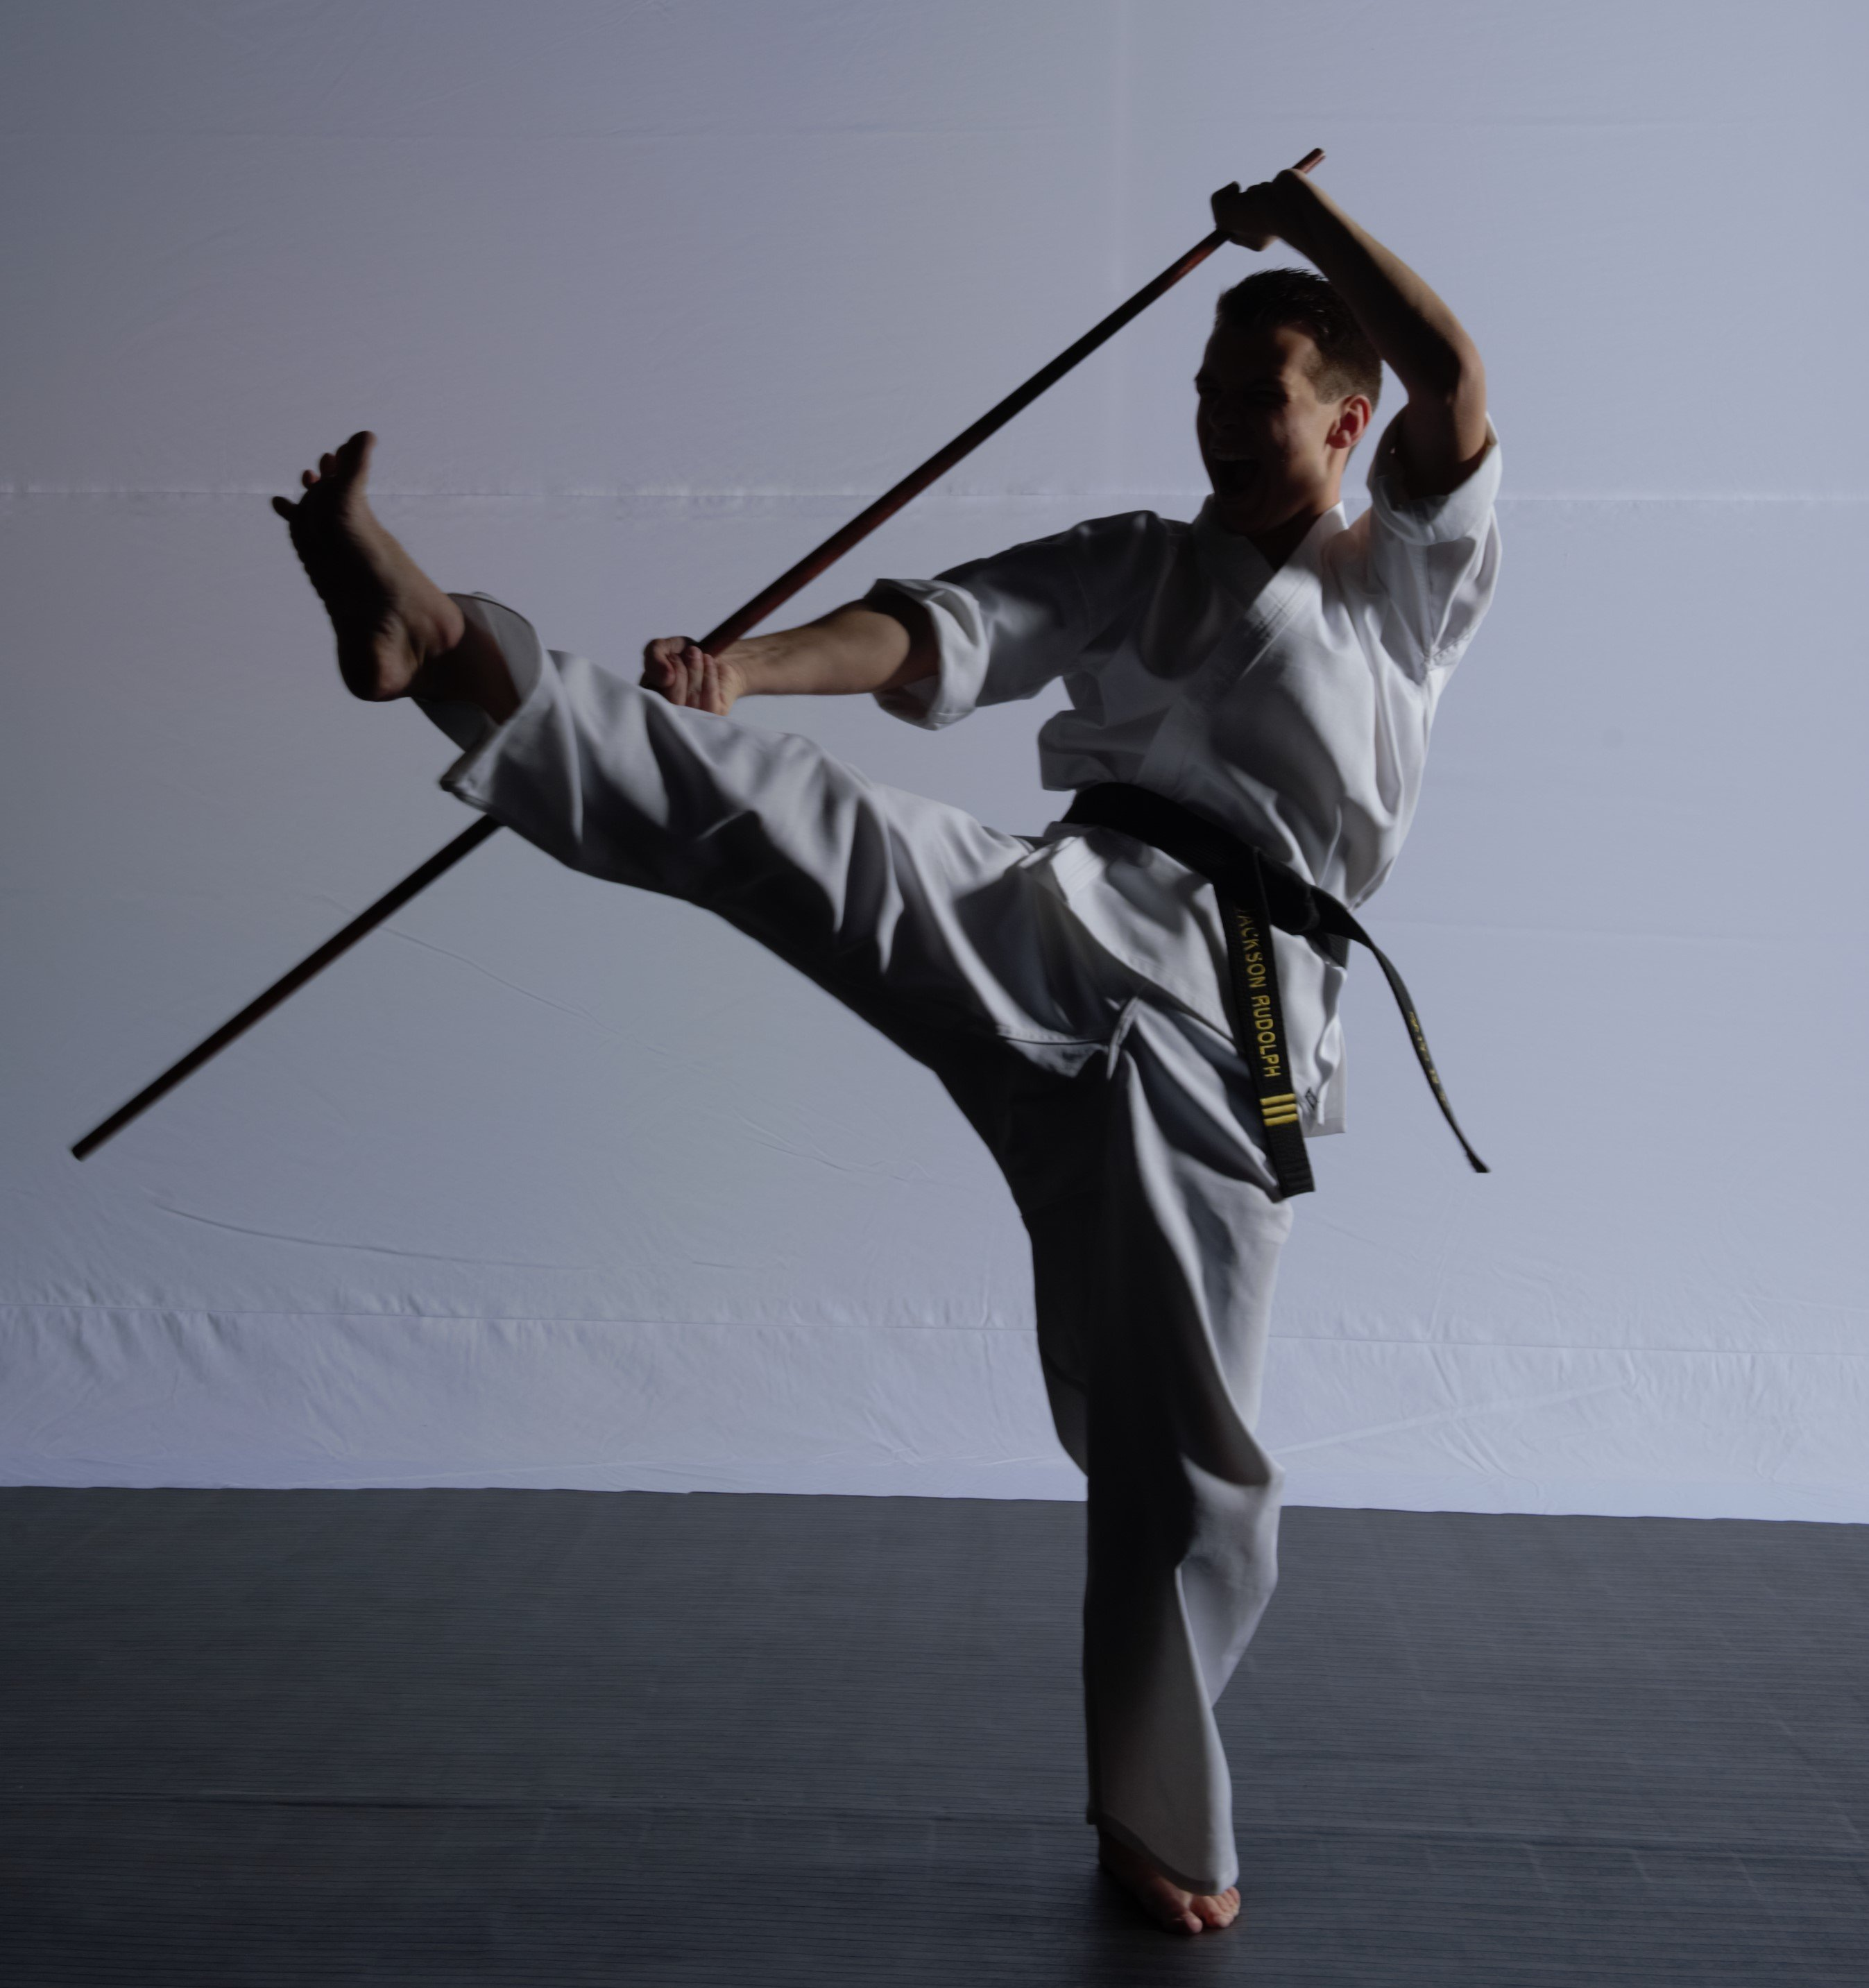 A cool man does a karate kick with a bo staff.